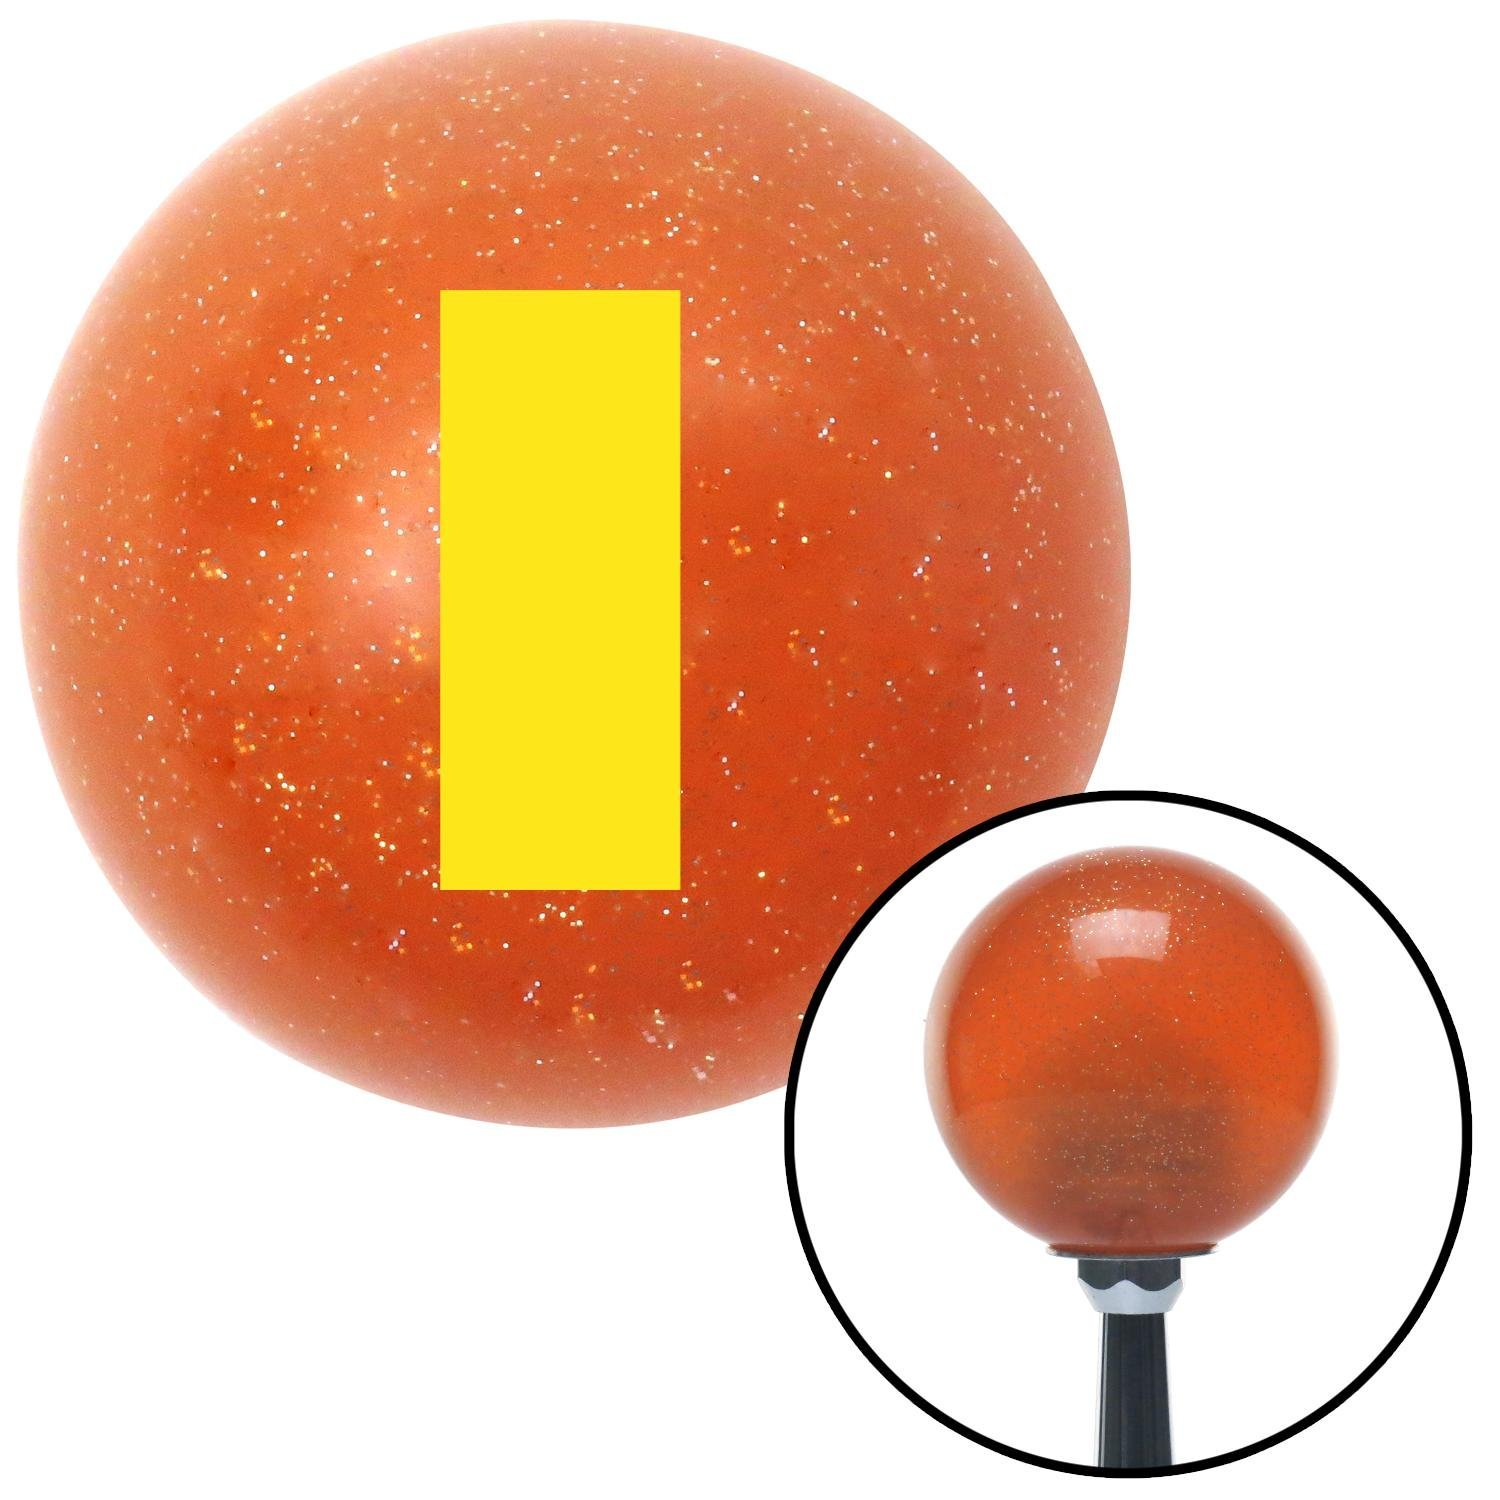 American Shifter 38482 Orange Metal Flake Shift Knob with 16mm x 1.5mm Insert Yellow Officer 01-2n Lt. and 1d Lt.